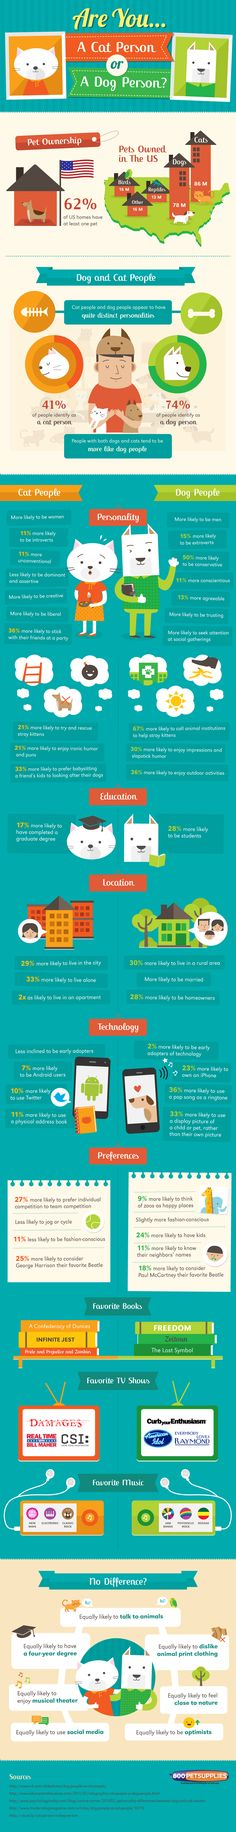 Did you know that the type of pet you care for says a lot about your personality? #infografía